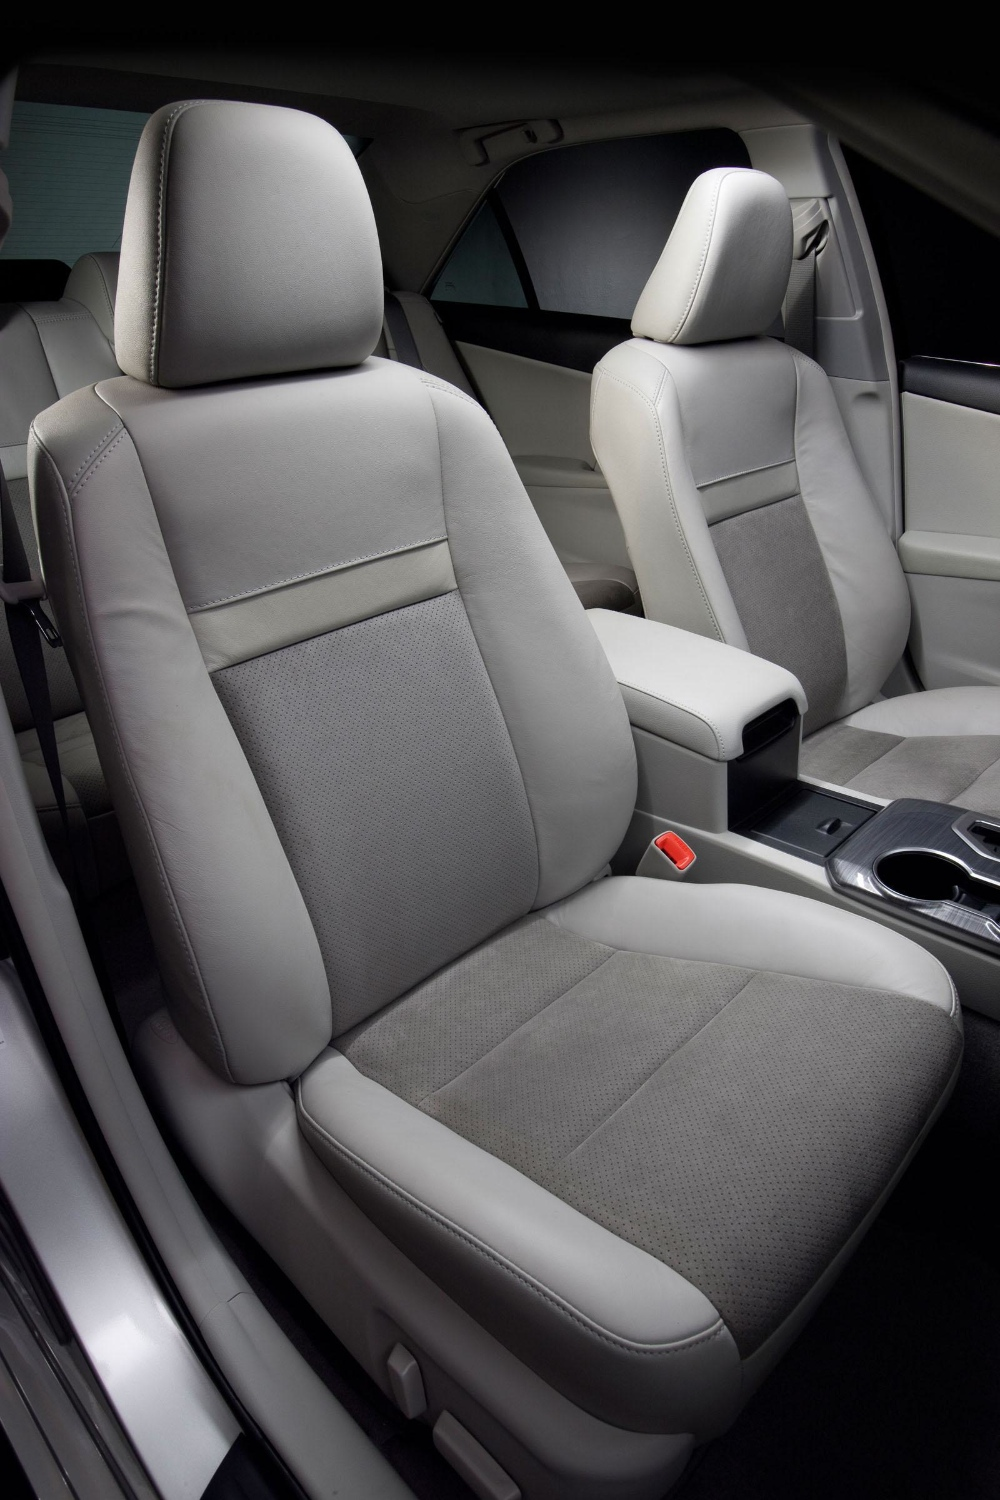 2013 toyota camry gets updated interior autoevolution. Black Bedroom Furniture Sets. Home Design Ideas